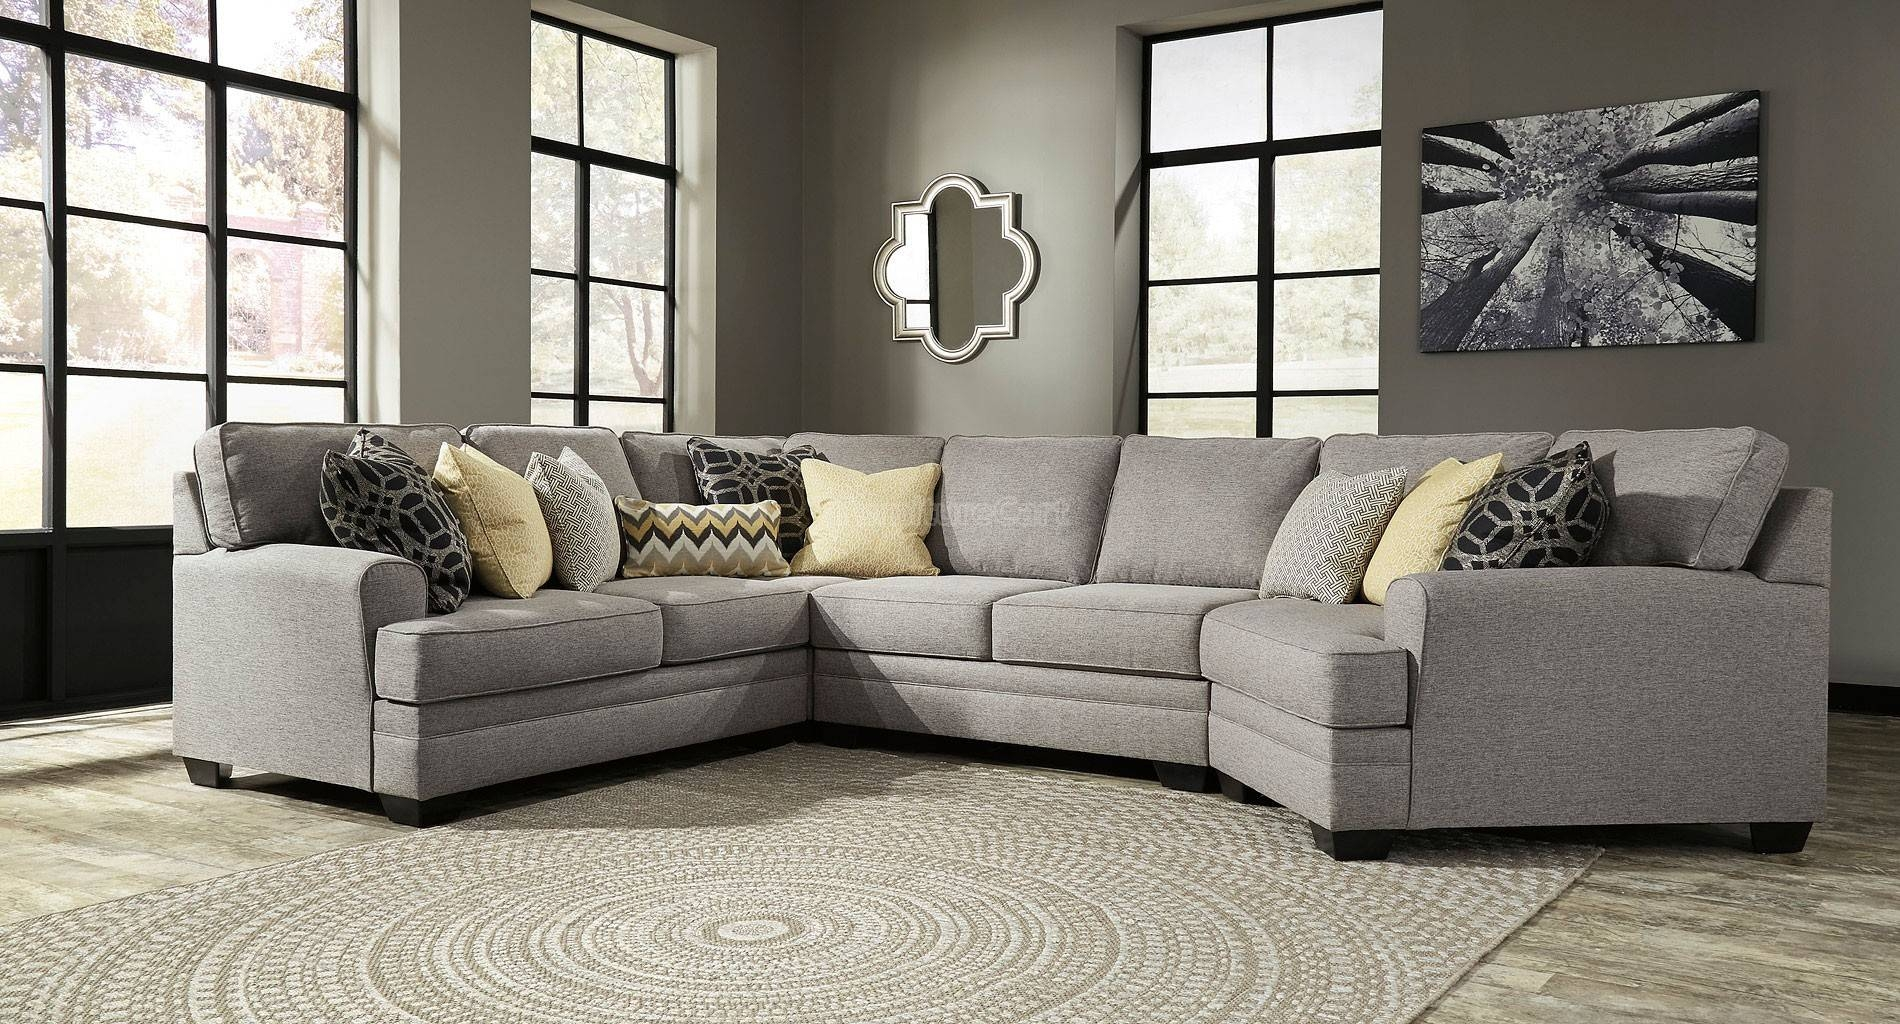 Sofas Center : Cuddler Sectional Sofa Gray Corner Aria Foresthill throughout Cuddler Sectional Sofa (Image 27 of 30)